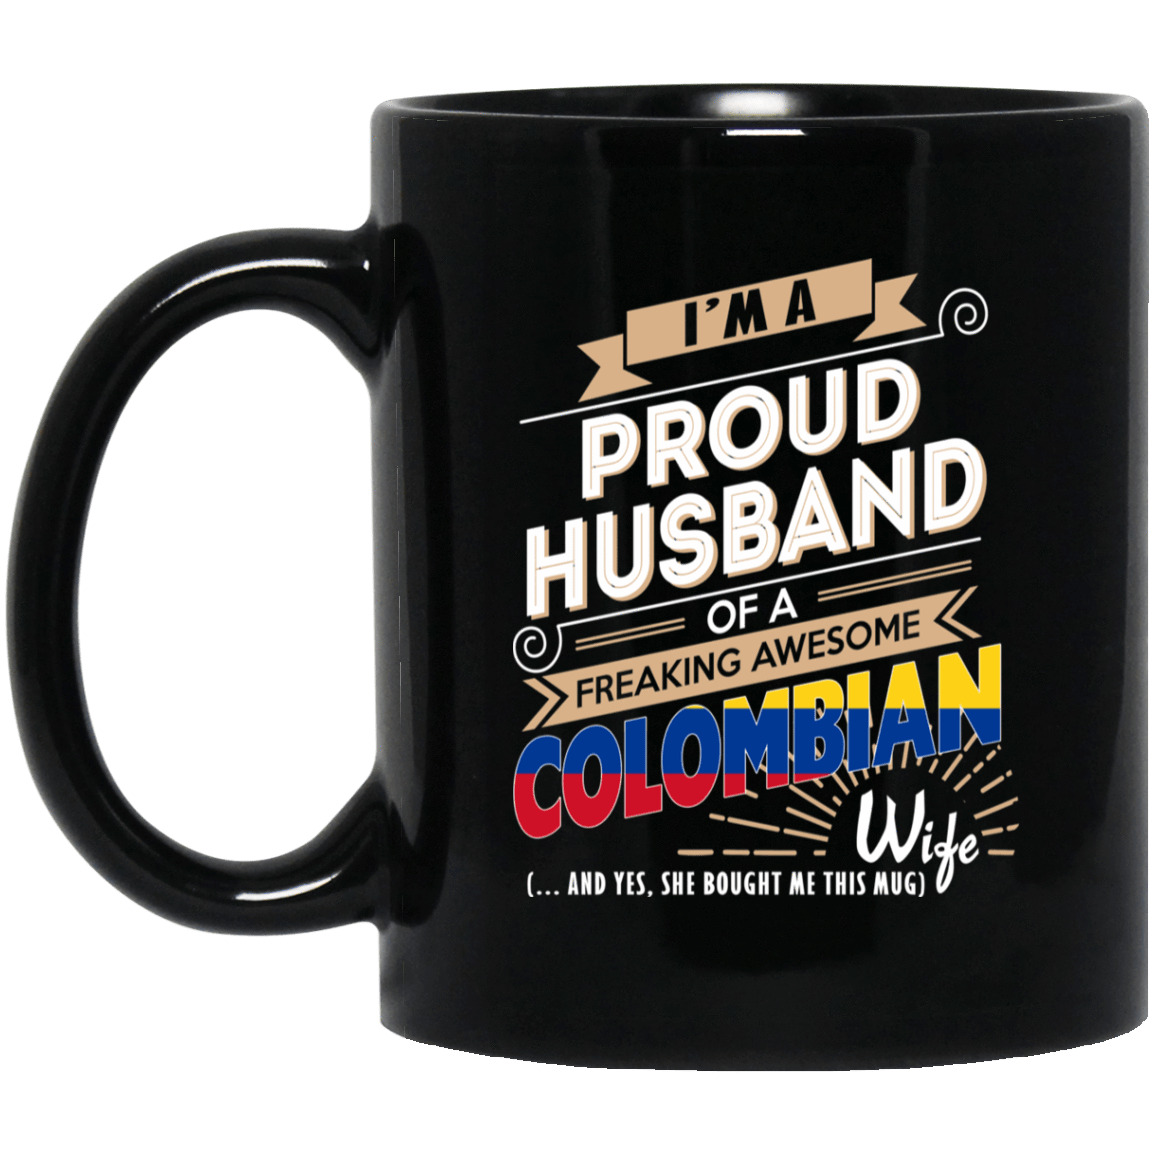 Proud Husband Of A Freaking Awesome Colombian Wife Mug 1065-10181-72136599-49307 - Tee Ript